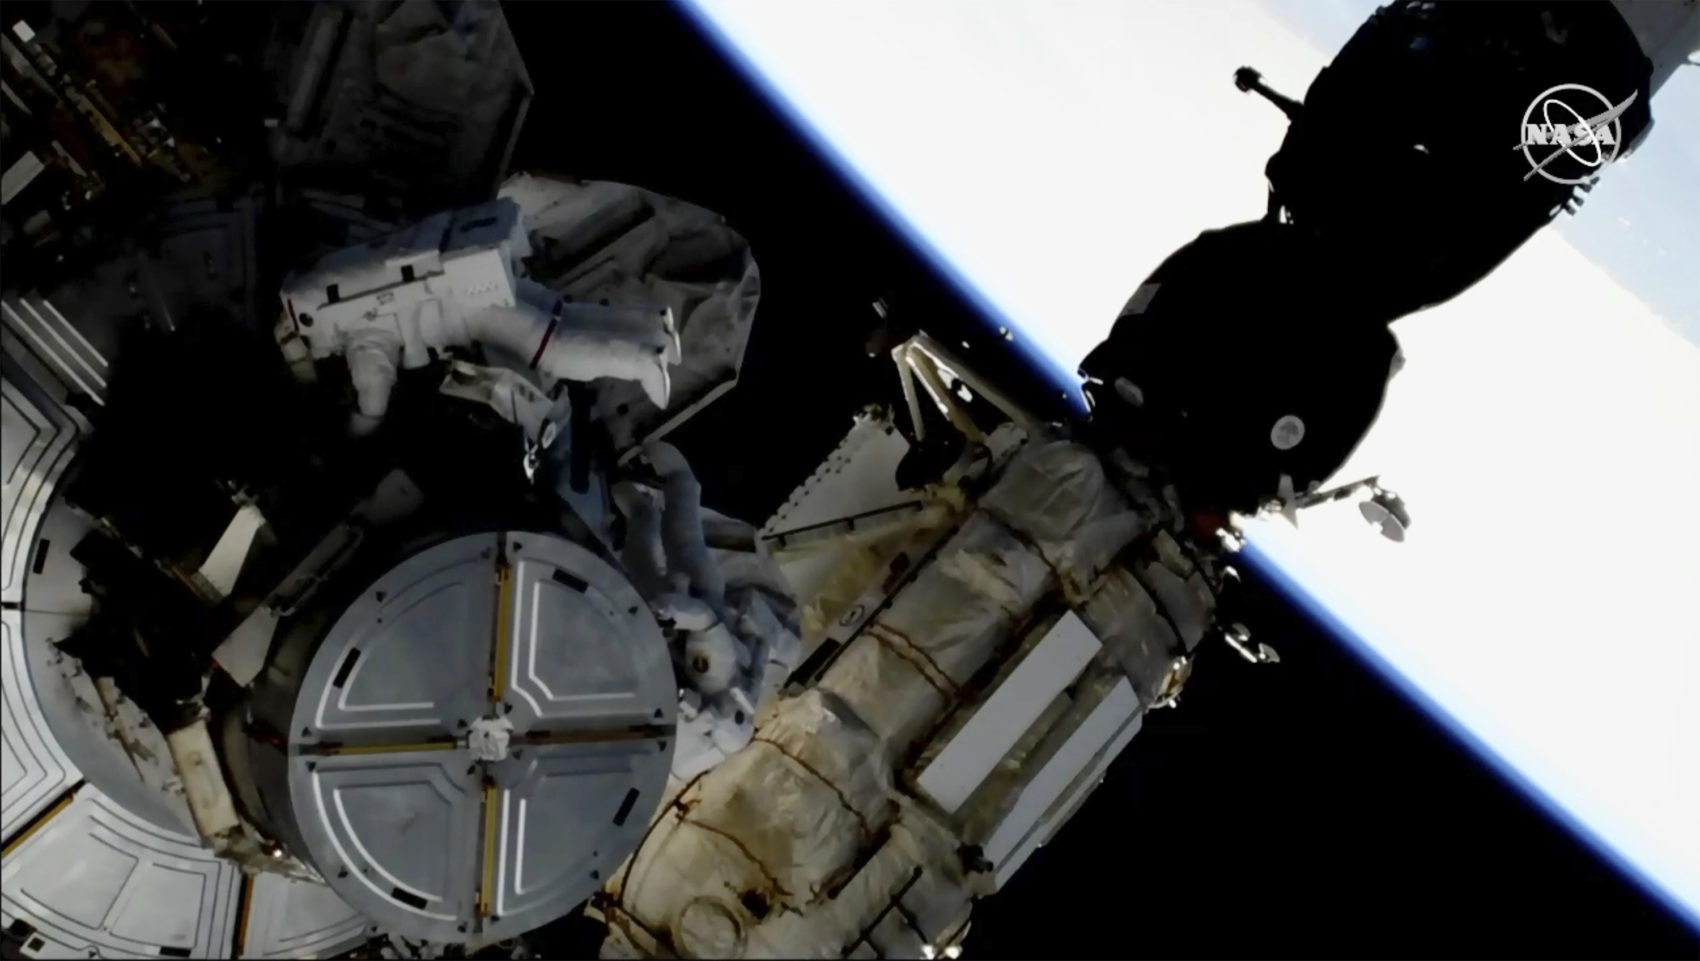 This image provided by NASA shows astronauts Anne McClain and Nick Hague taking a spacewalk to replace aging batteries on the International Space Station on Friday, March 22, 2019. (NASA via AP)